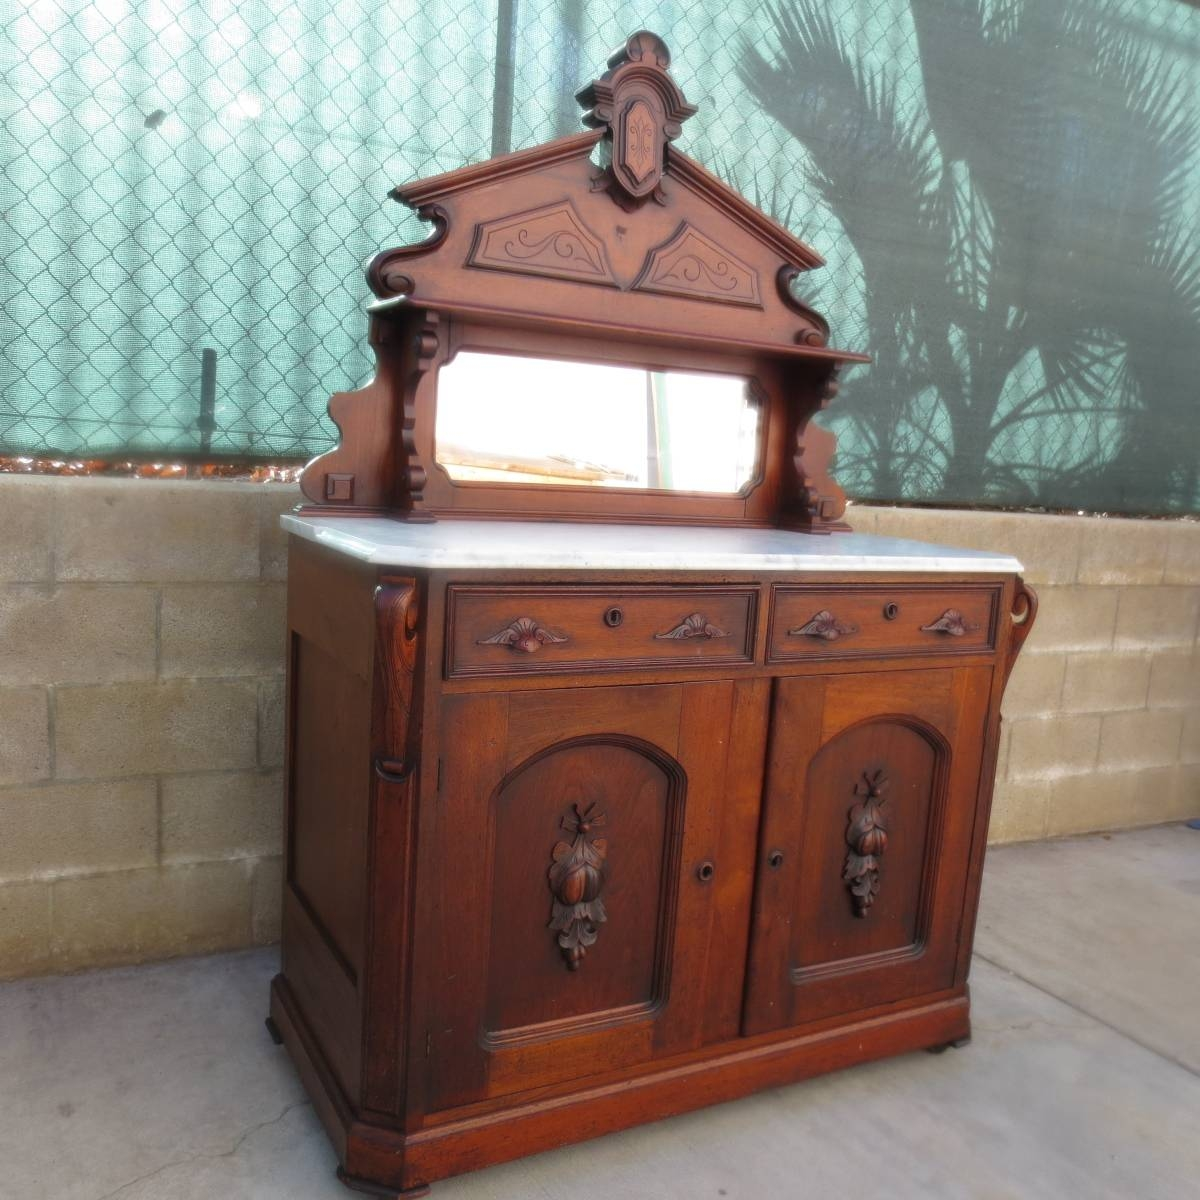 Antique Sideboards And Buffets Images — All Furniture : Antique intended for Antique Sideboards And Buffets (Image 4 of 15)